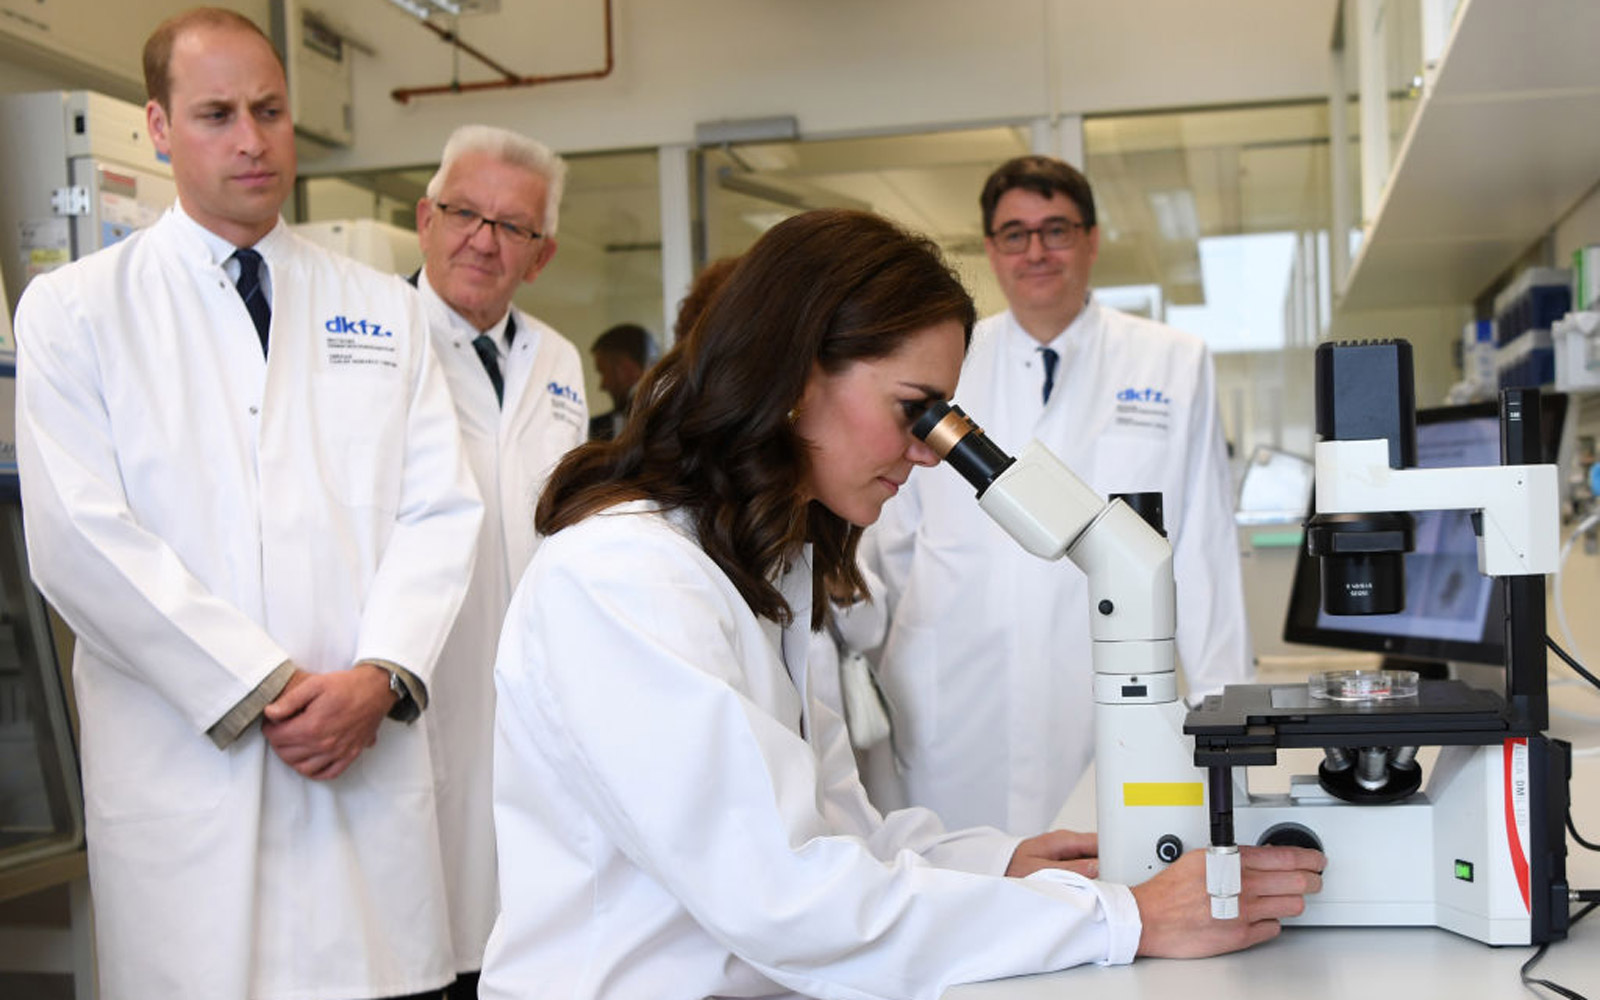 HEIDELBERG, GERMANY - JULY 20:  Prince William, Duke of Cambridge and Catherine, Duchess of Cambridge during a visit to the German Cancer Research Institute on day 2 of their official visit to Germany on July 20, 2017 in Heidelberg, Germany. (Photo by Mar